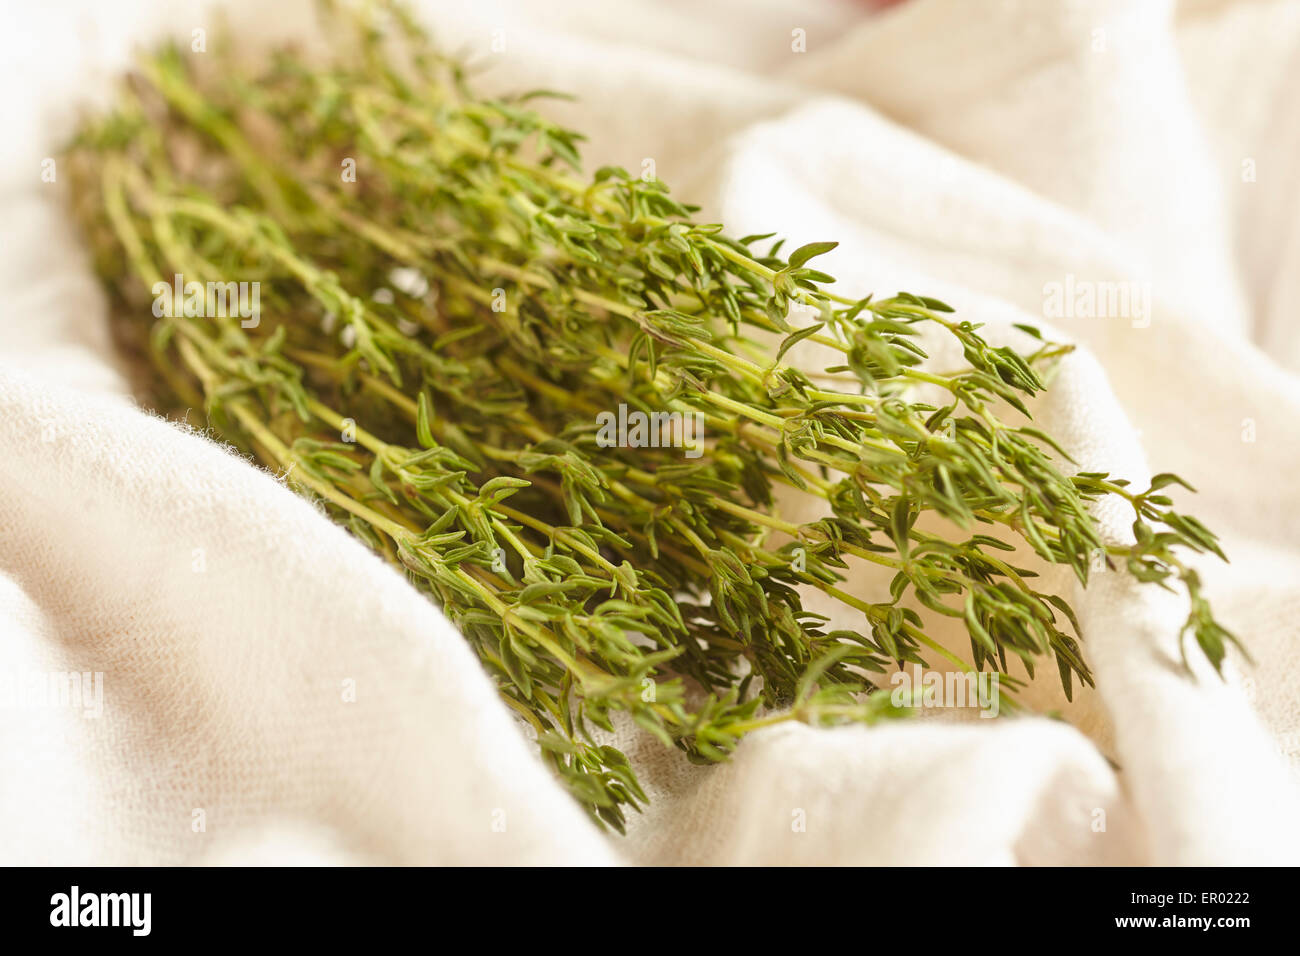 sprigs of fresh thyme - Stock Image